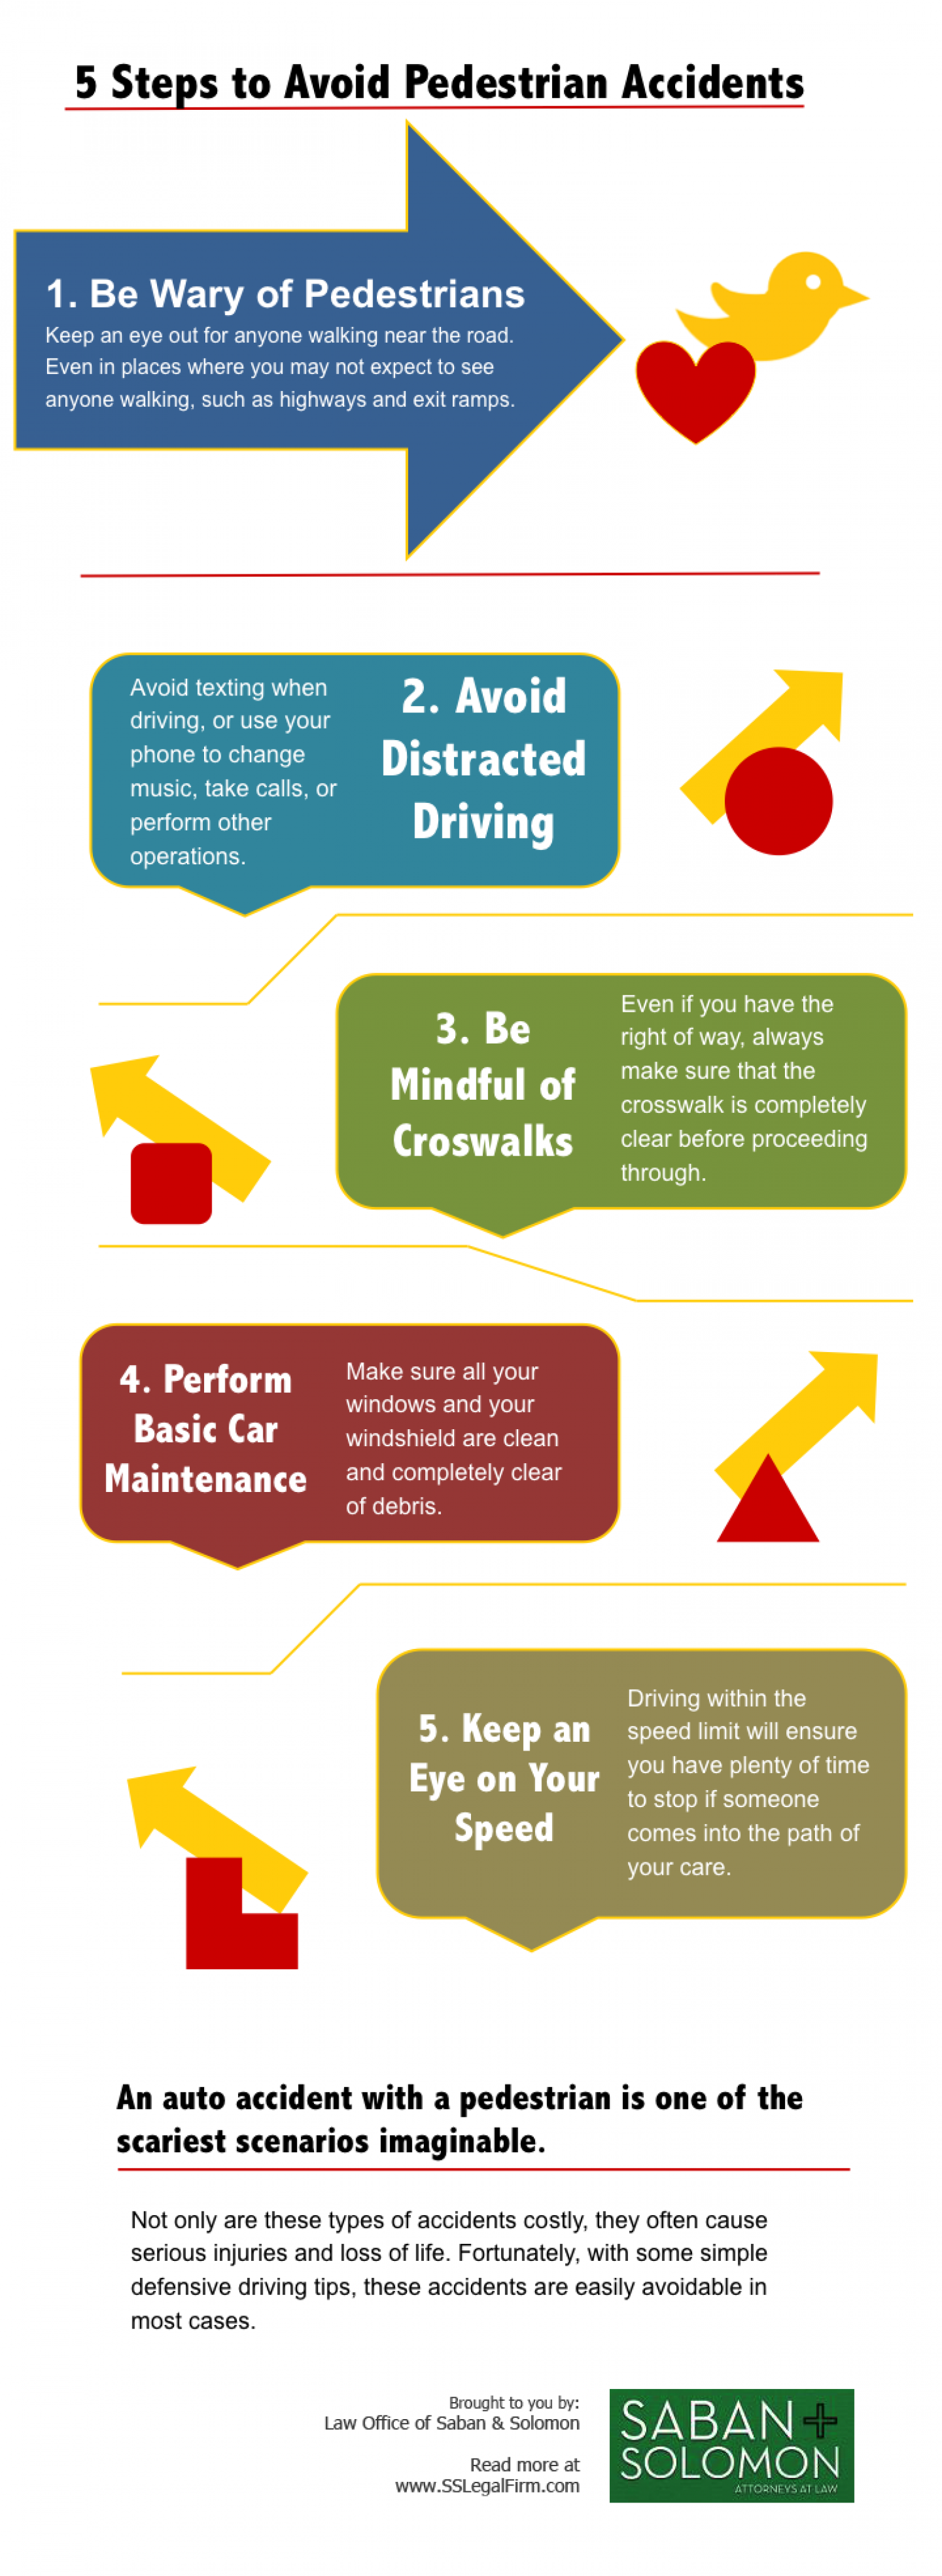 5 Steps to Avoid Pedestrian Accidents Infographic